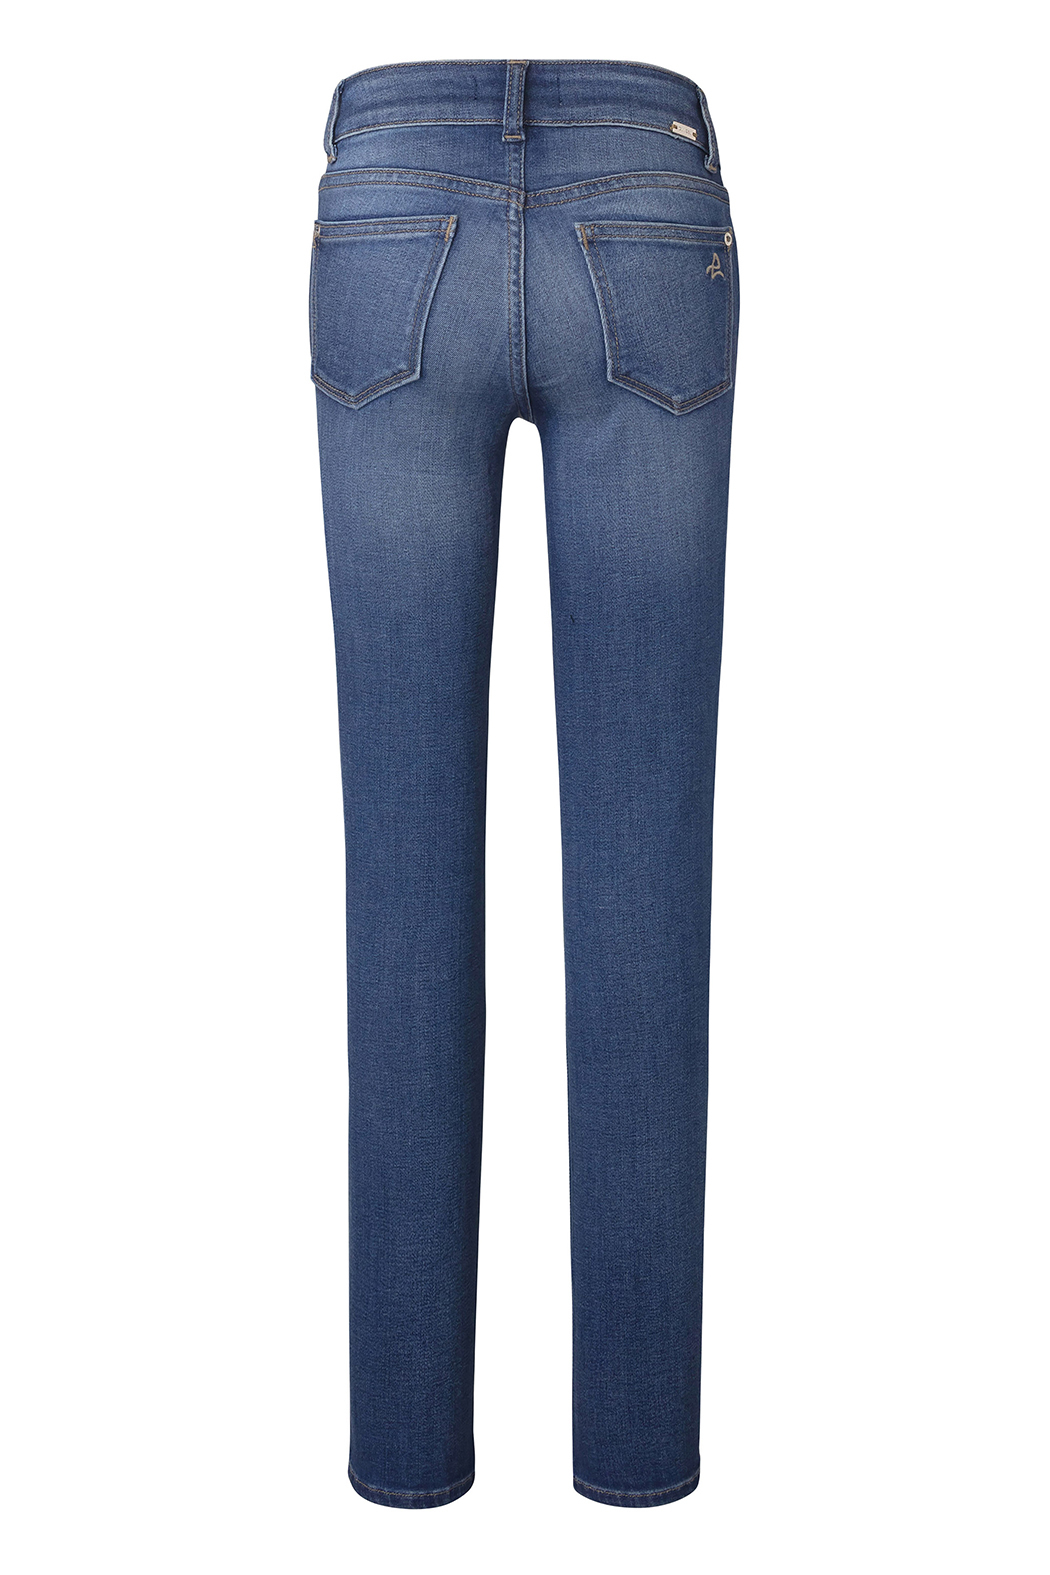 DL1961 Chloe Skinny Child Jeans Parula - Front Full Image